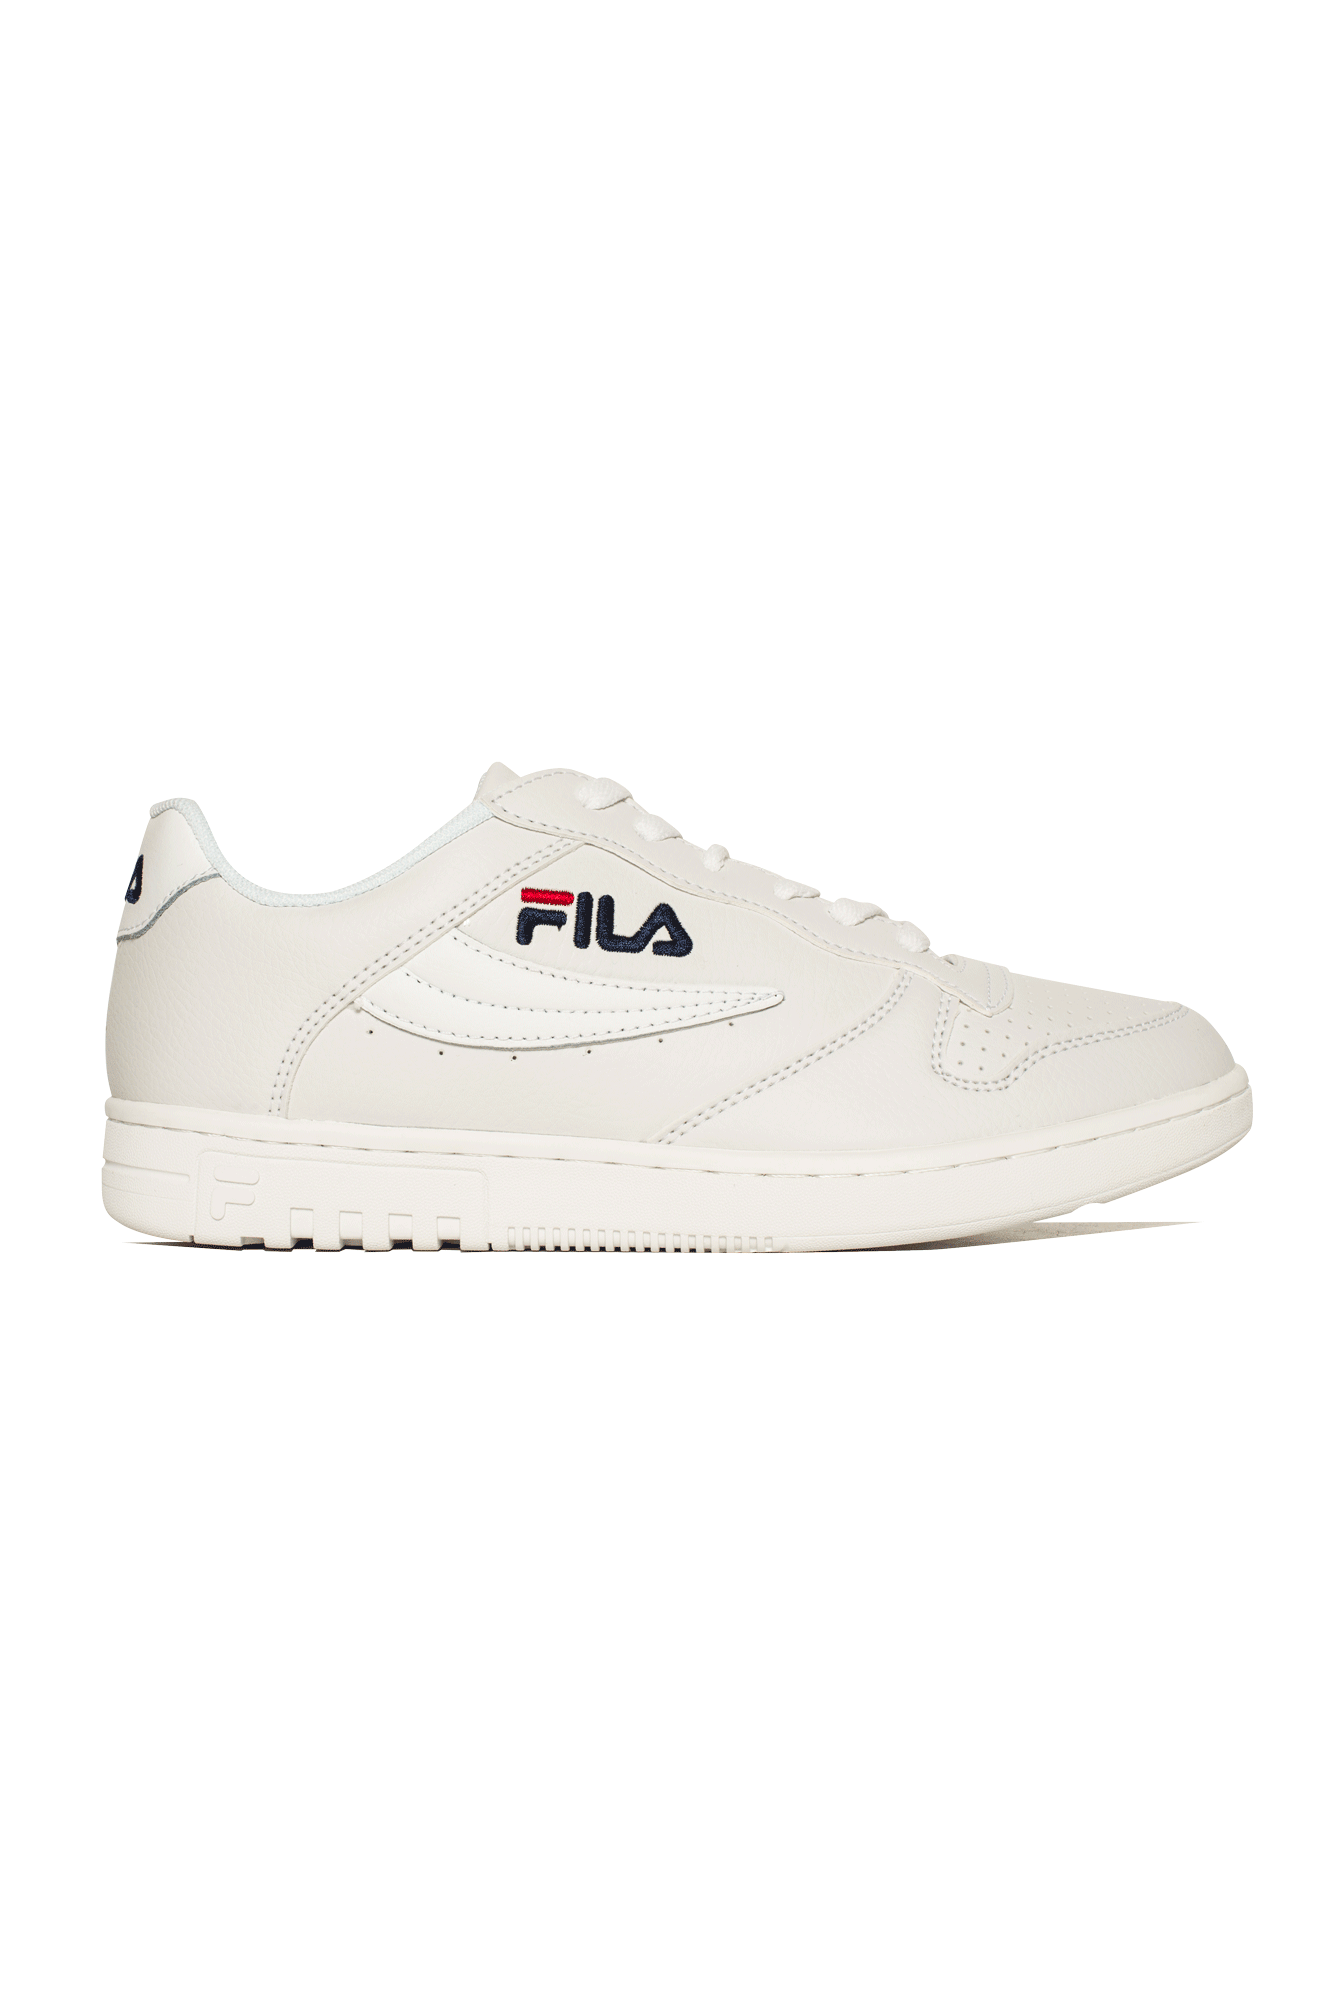 Fila Sneakers FX-100 Low Bianco 1010006#000#1FG#8 - One Block Down